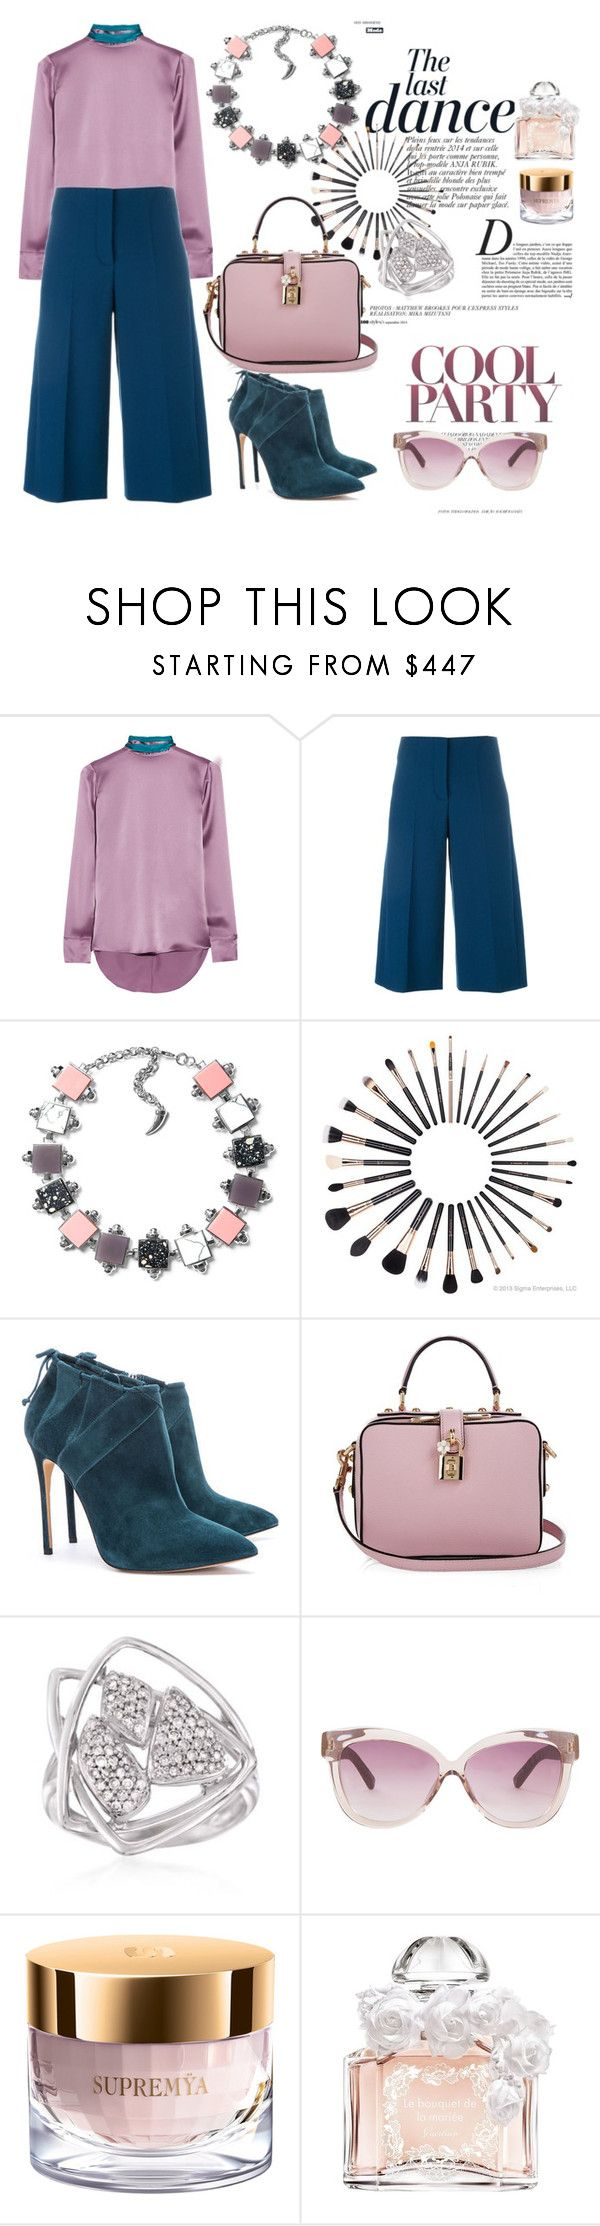 Untitled #195 by denisa-marcu on Polyvore featuring Matthew Williamson, Cédric Charlier, Dolce&Gabbana, Ross-Simons, Linda Farrow Luxe, Guerlain, Sisley Paris, Anja, women's clothing and women's fashion